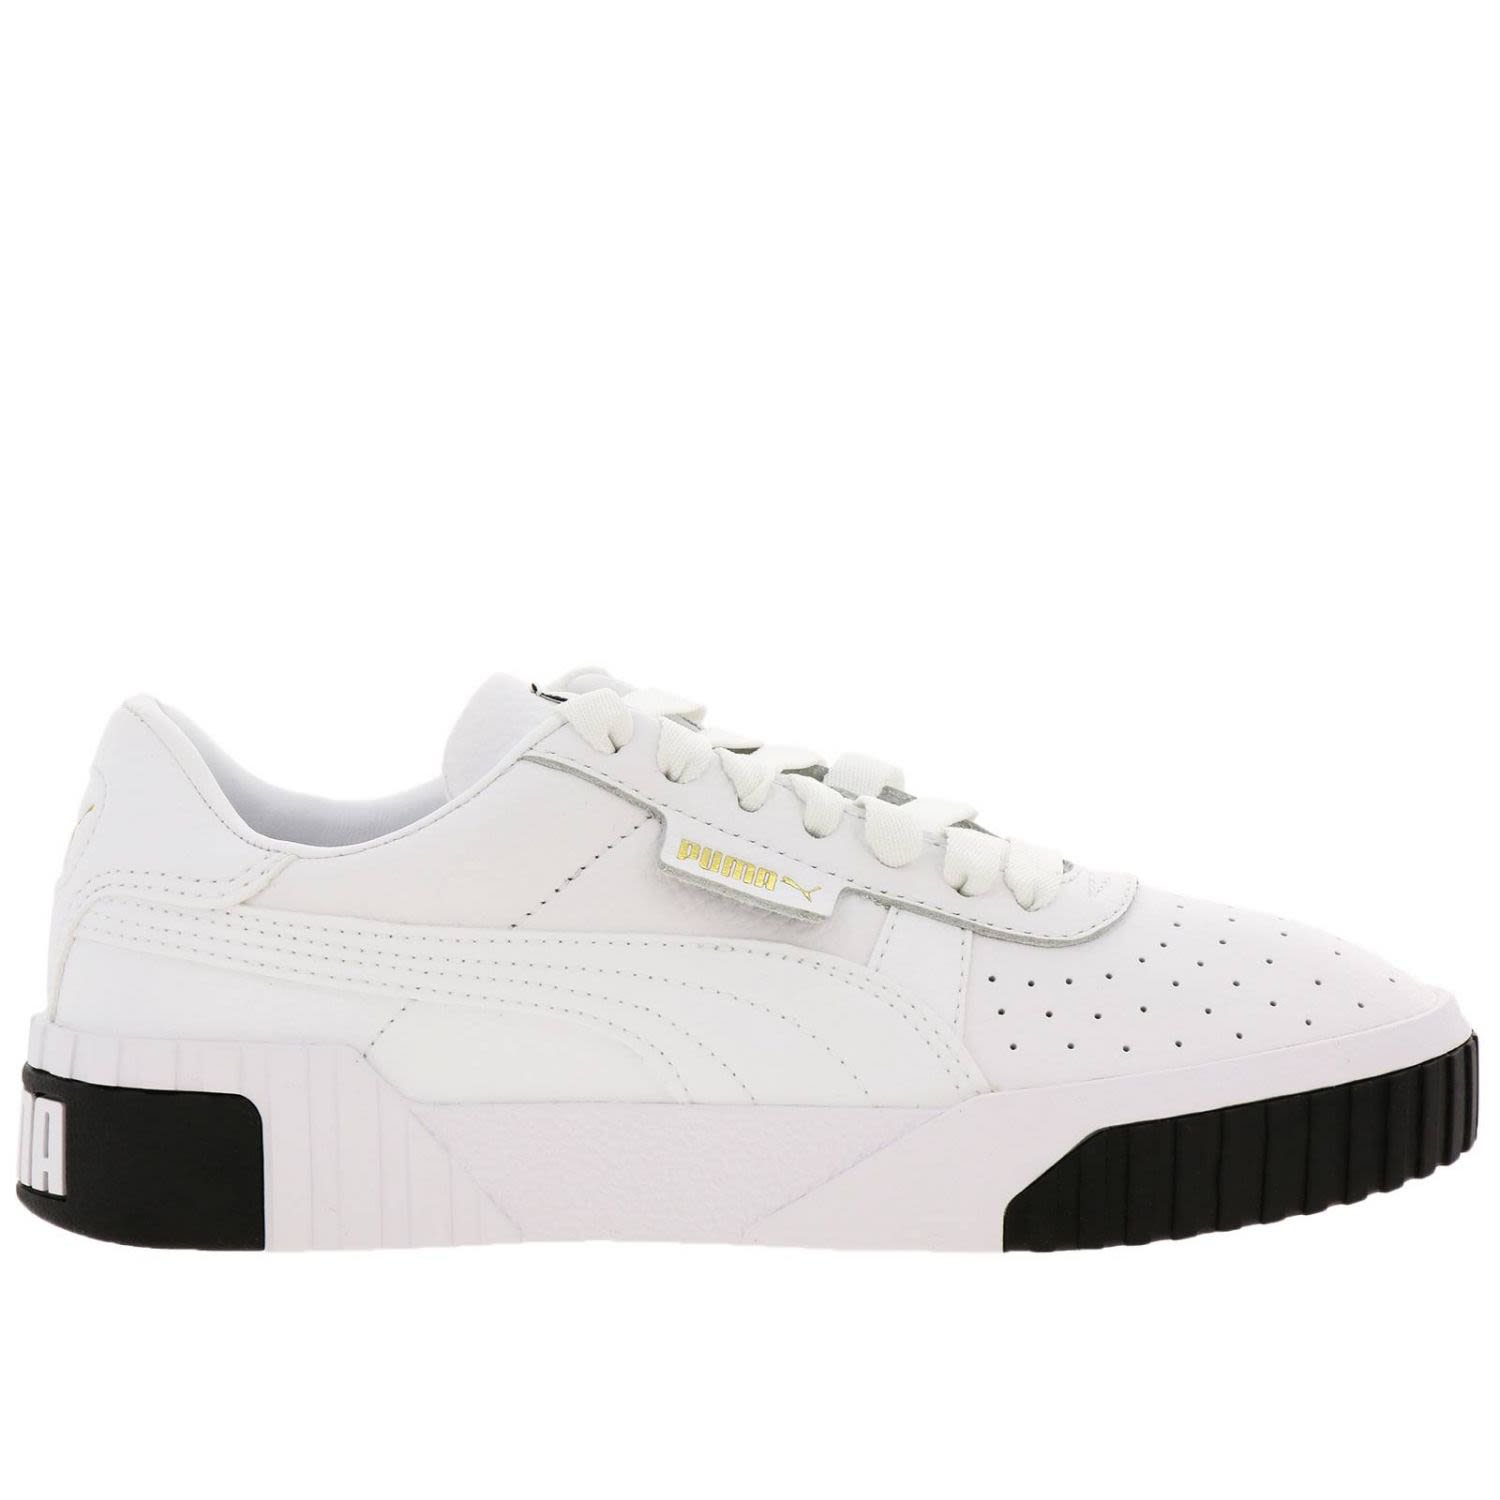 Puma Sneakers Shoes Women Puma